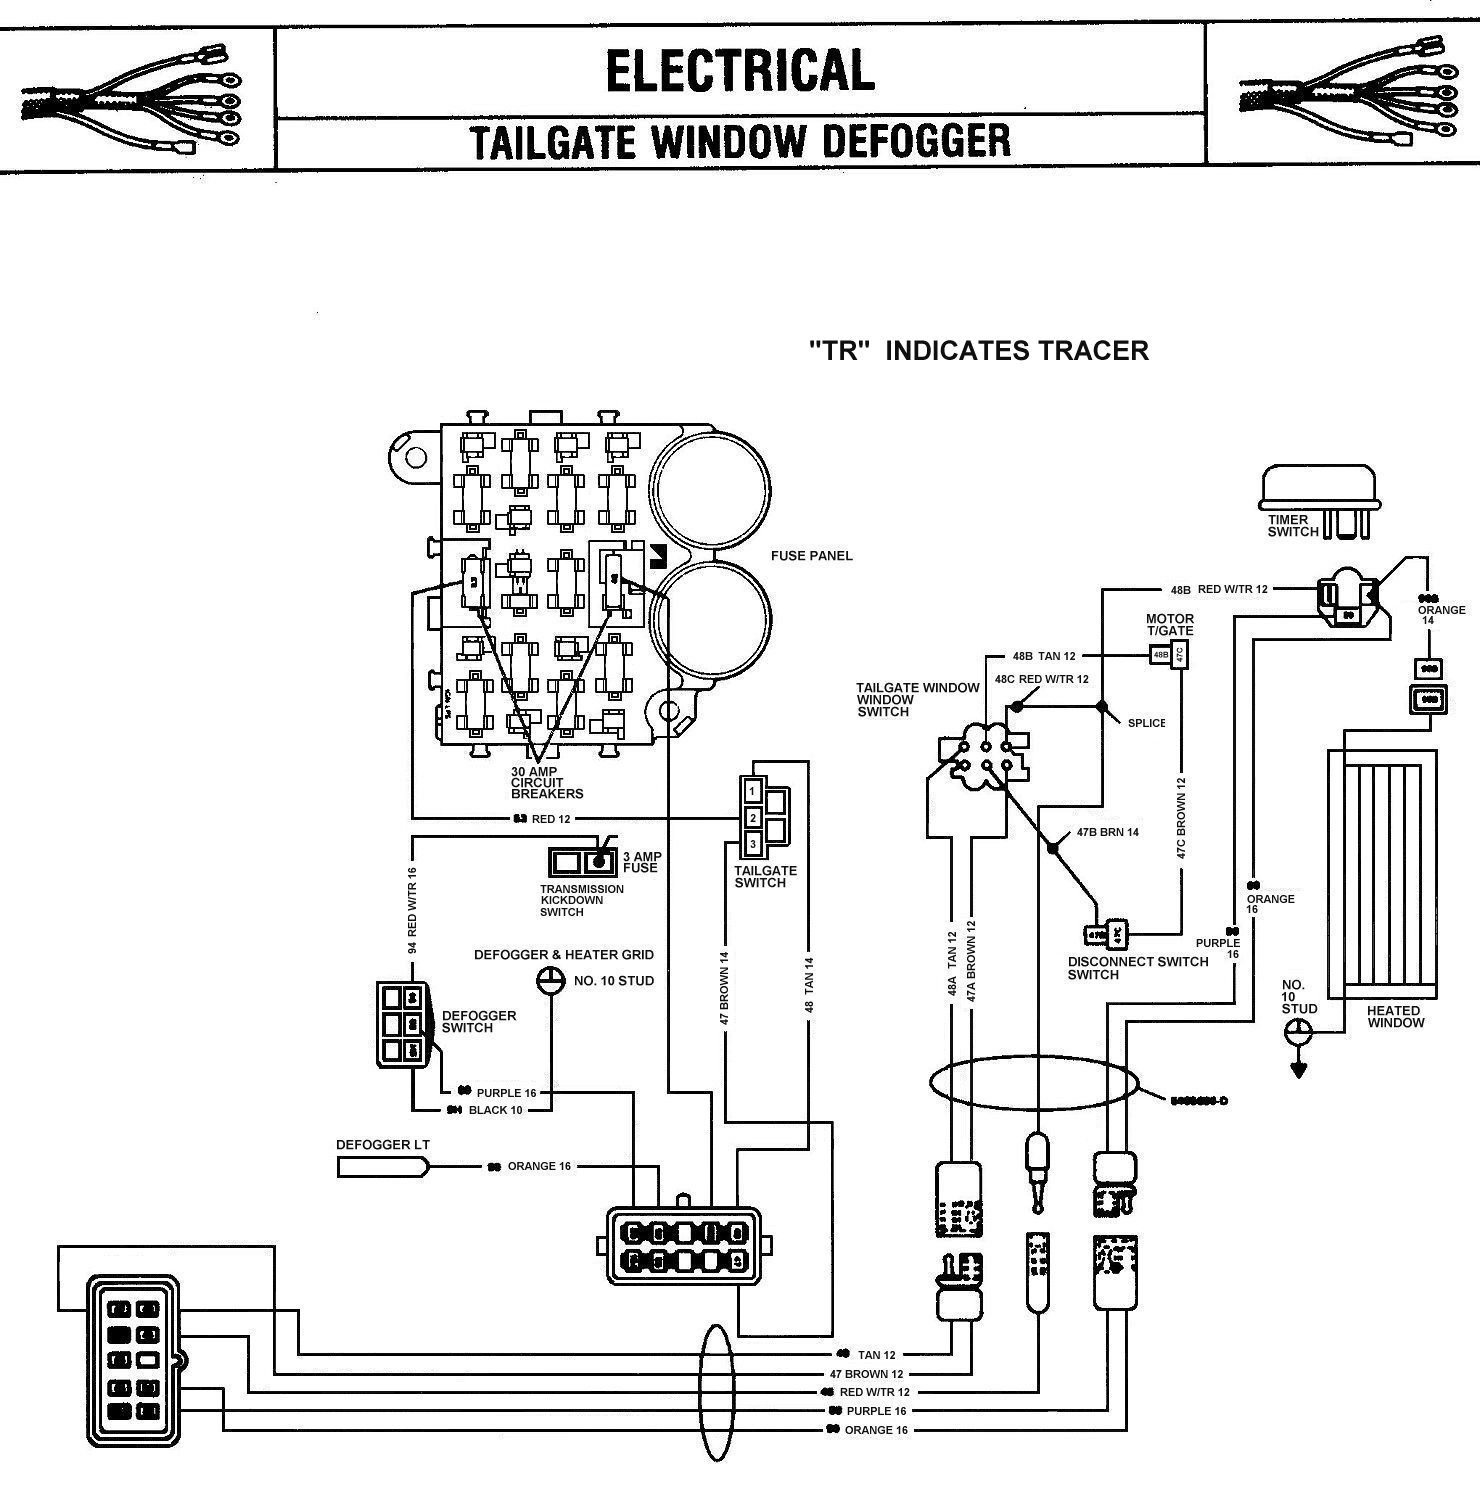 Toyota Pickup Fuse Box Diagram Electric Windows Wiring Data Library Ford Probe 1984 1986